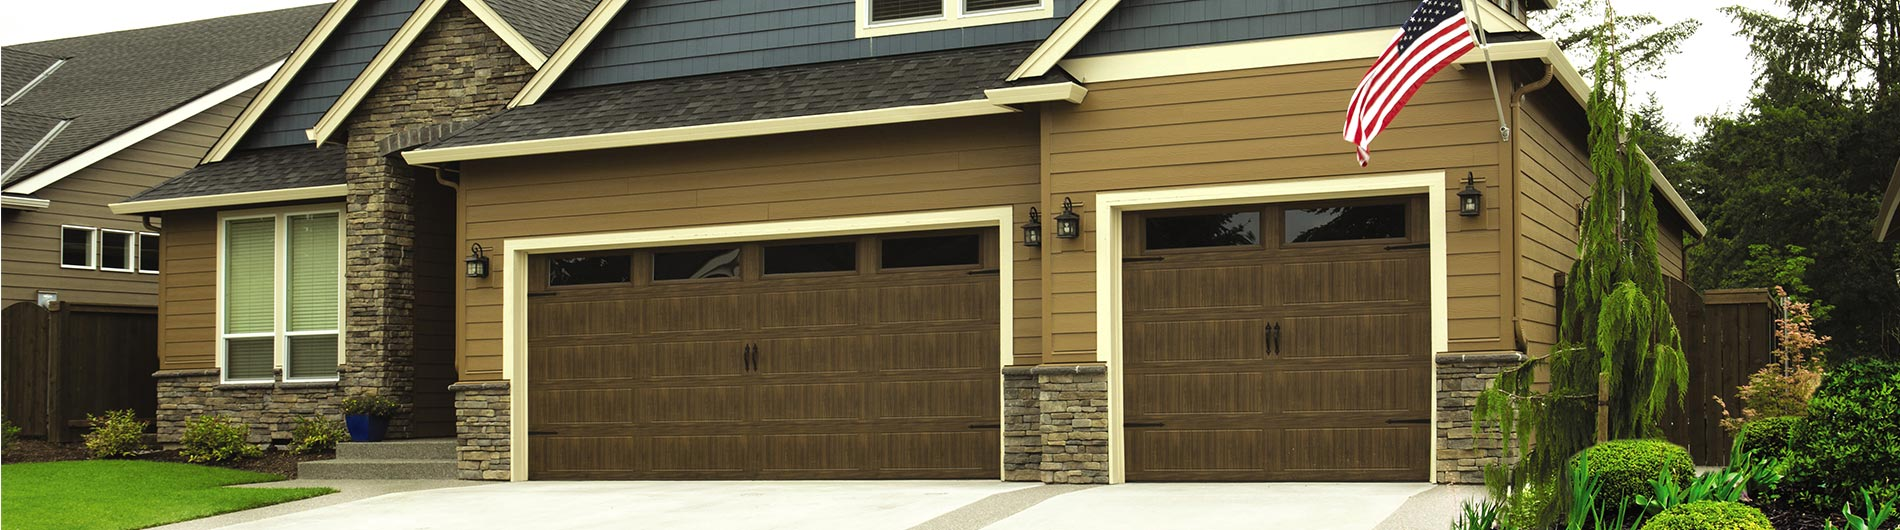 Steel garage doors Wayne dalton garage doors